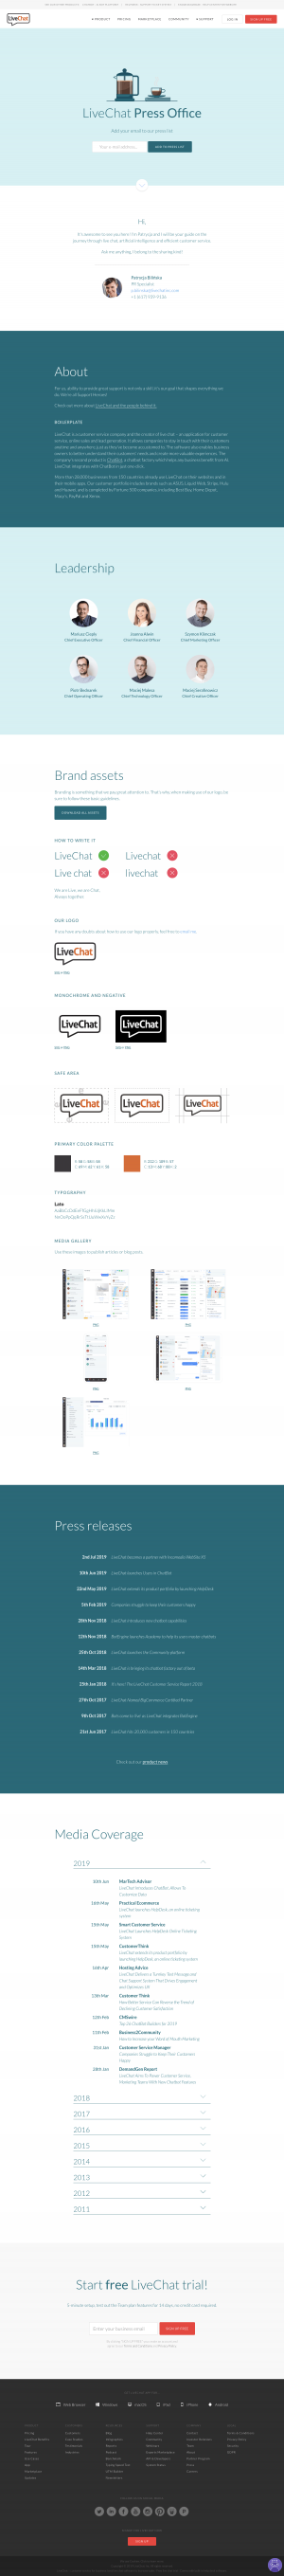 LiveChat - Media Kit page